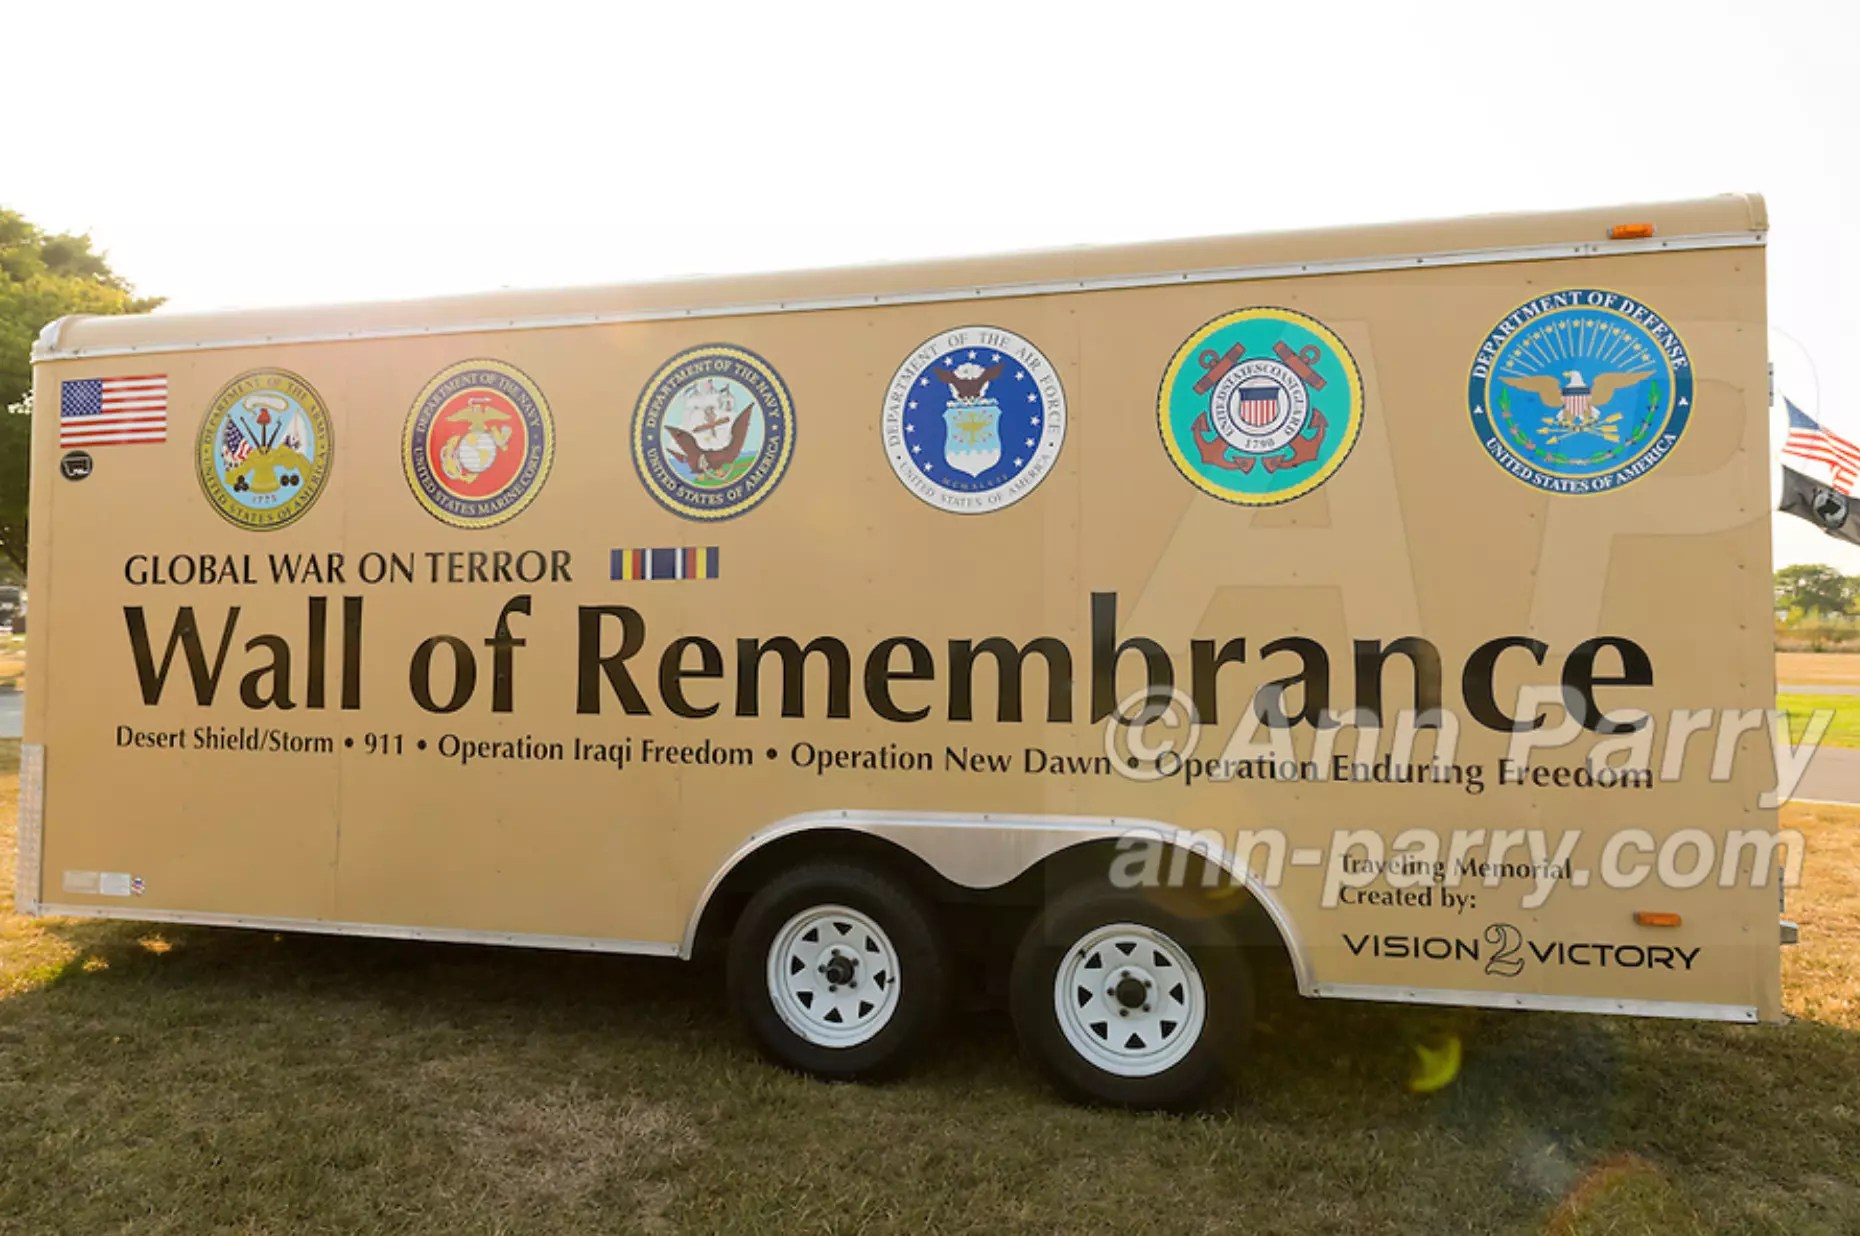 "East Meadow, NY, U.S. 11th Sept. 2013. The Wall of Remembrance trailer is by the Global War on Terror ""Wall of Remembrance"" a traveling memorial on display in New York for the first time, at Eisenhower Park on the 12th Anniversary of the terrorist attacks of 9/11. The unique 94 feet long by 6 feet high wall has, on one side, almost 11,000 names of those lost on September 11, 2001, along with heroes and veterans who lost their lives defending freedom of Americans over past 30 years. On the wall's other side is a timeline, with photos, covering 1983 to present day."